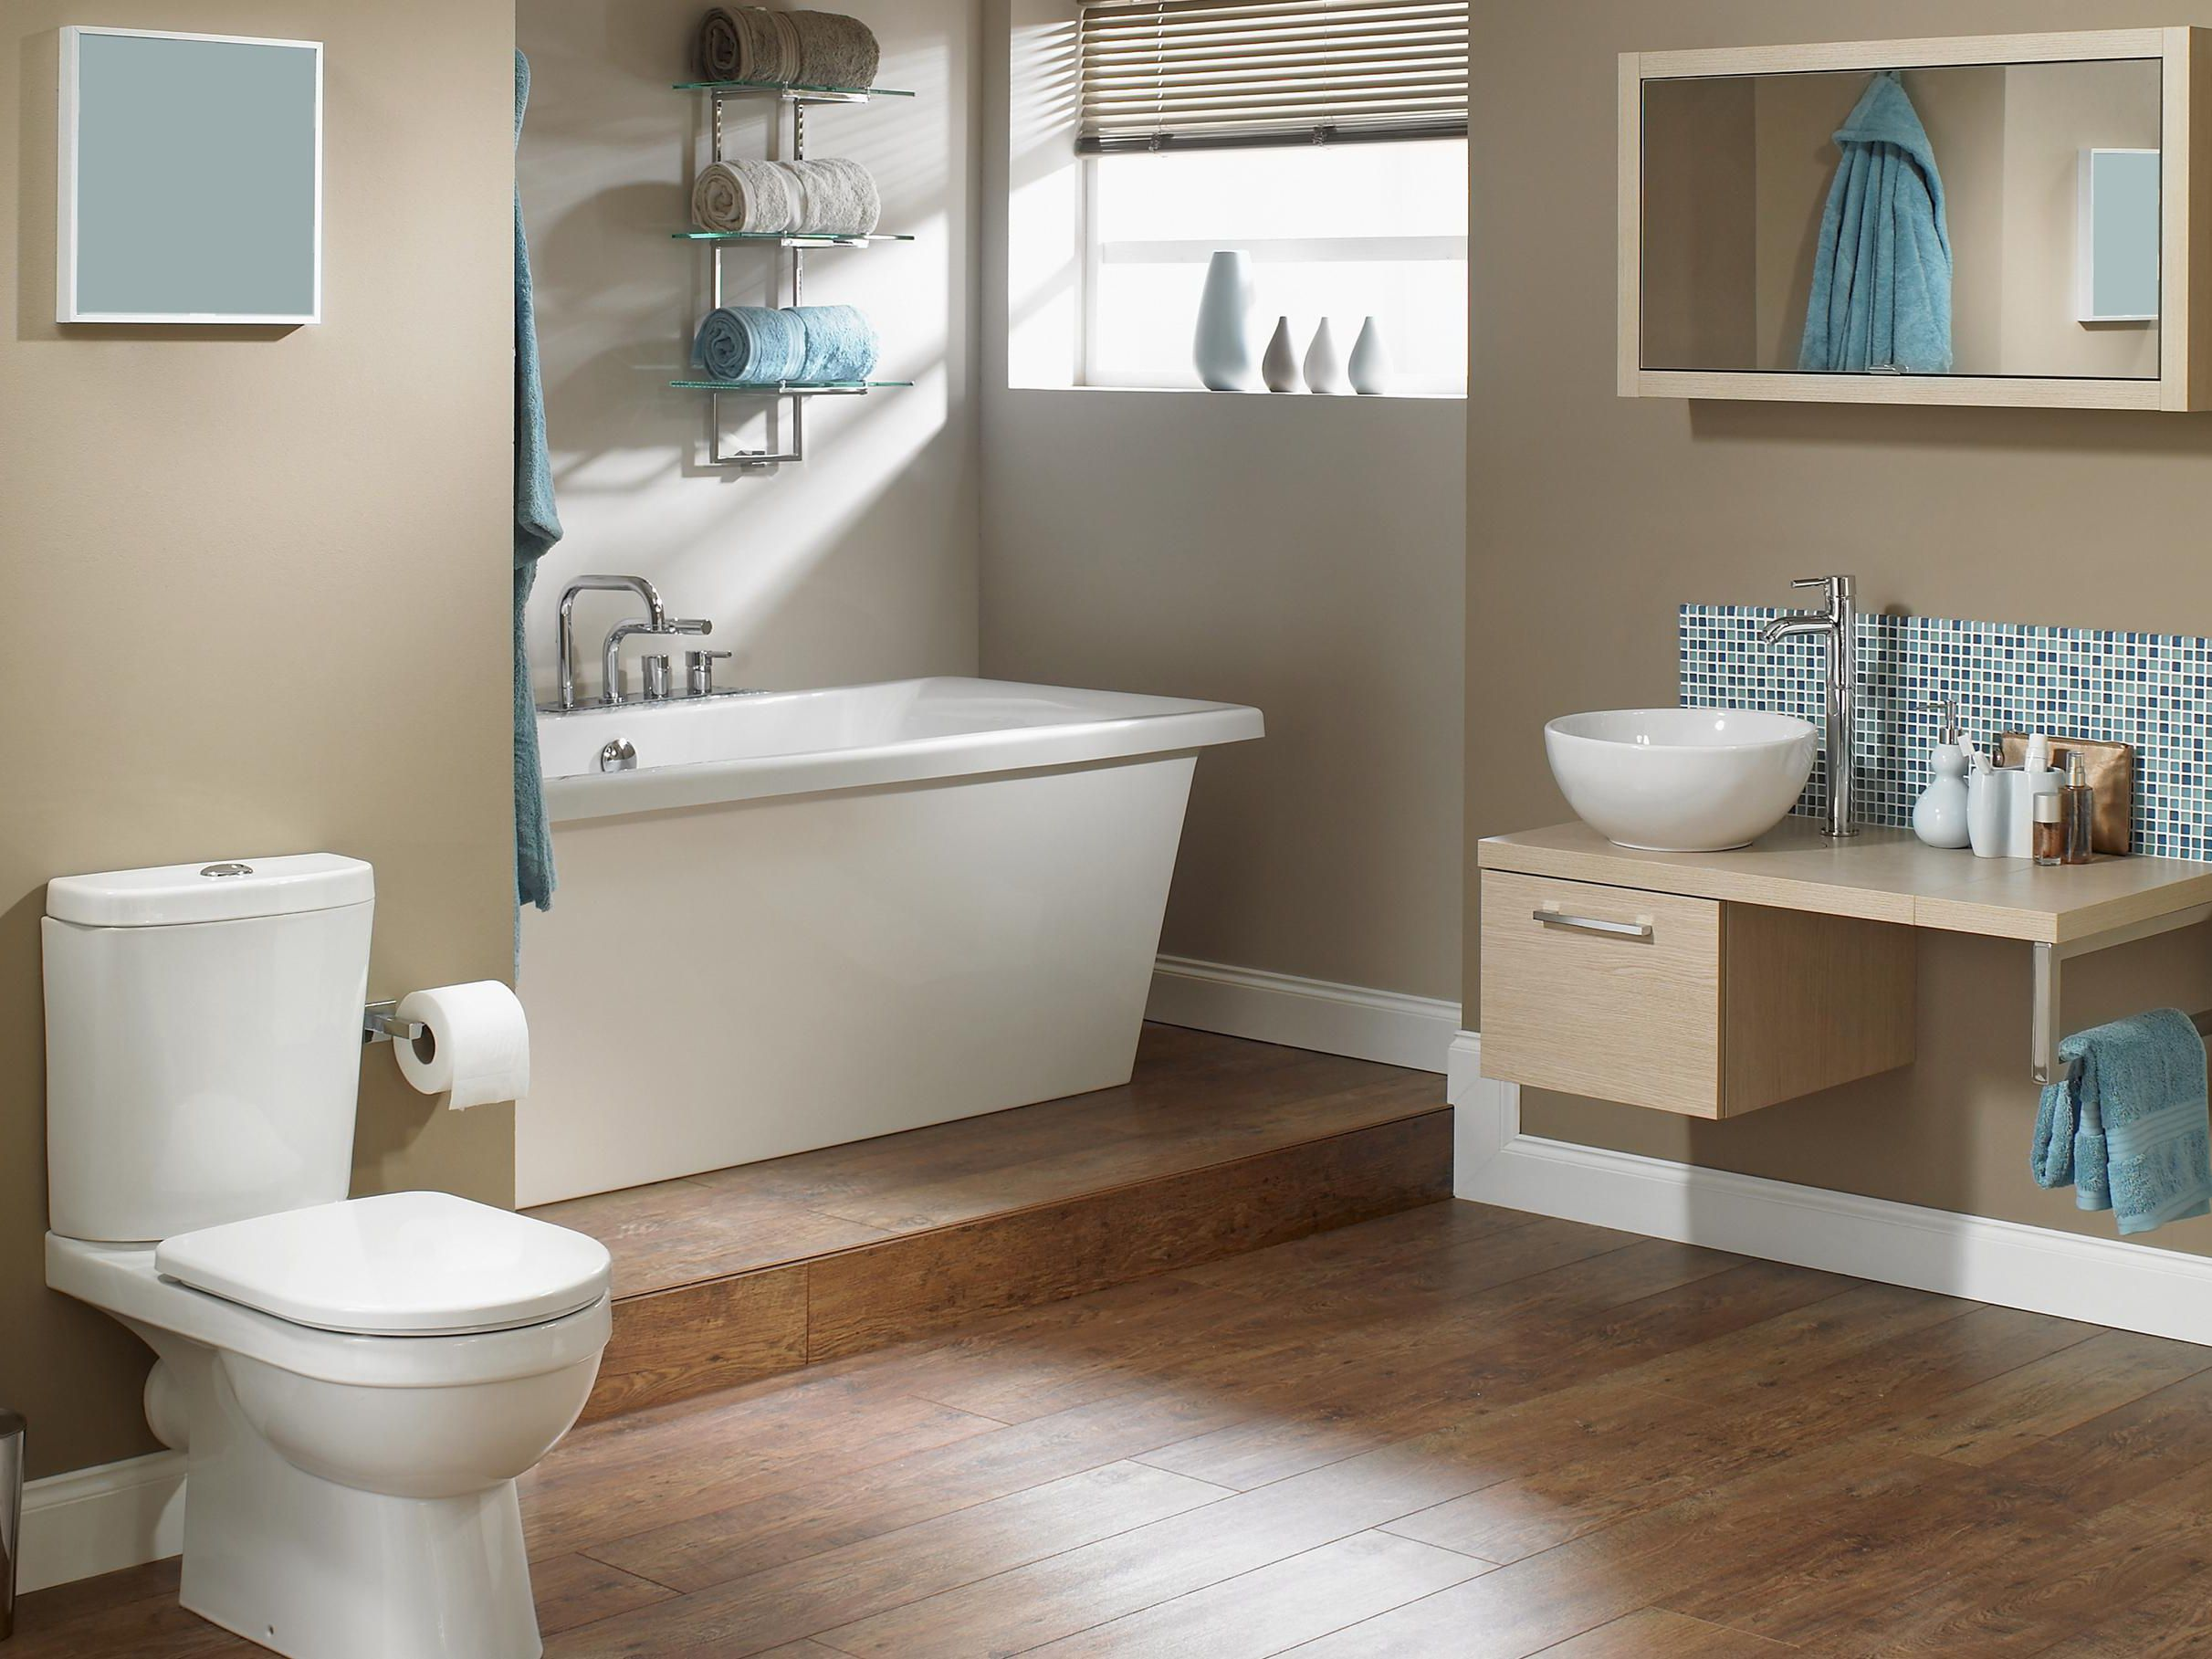 Remodel Your Bathroom with These 7 Over The Toilet Shelf Ideas